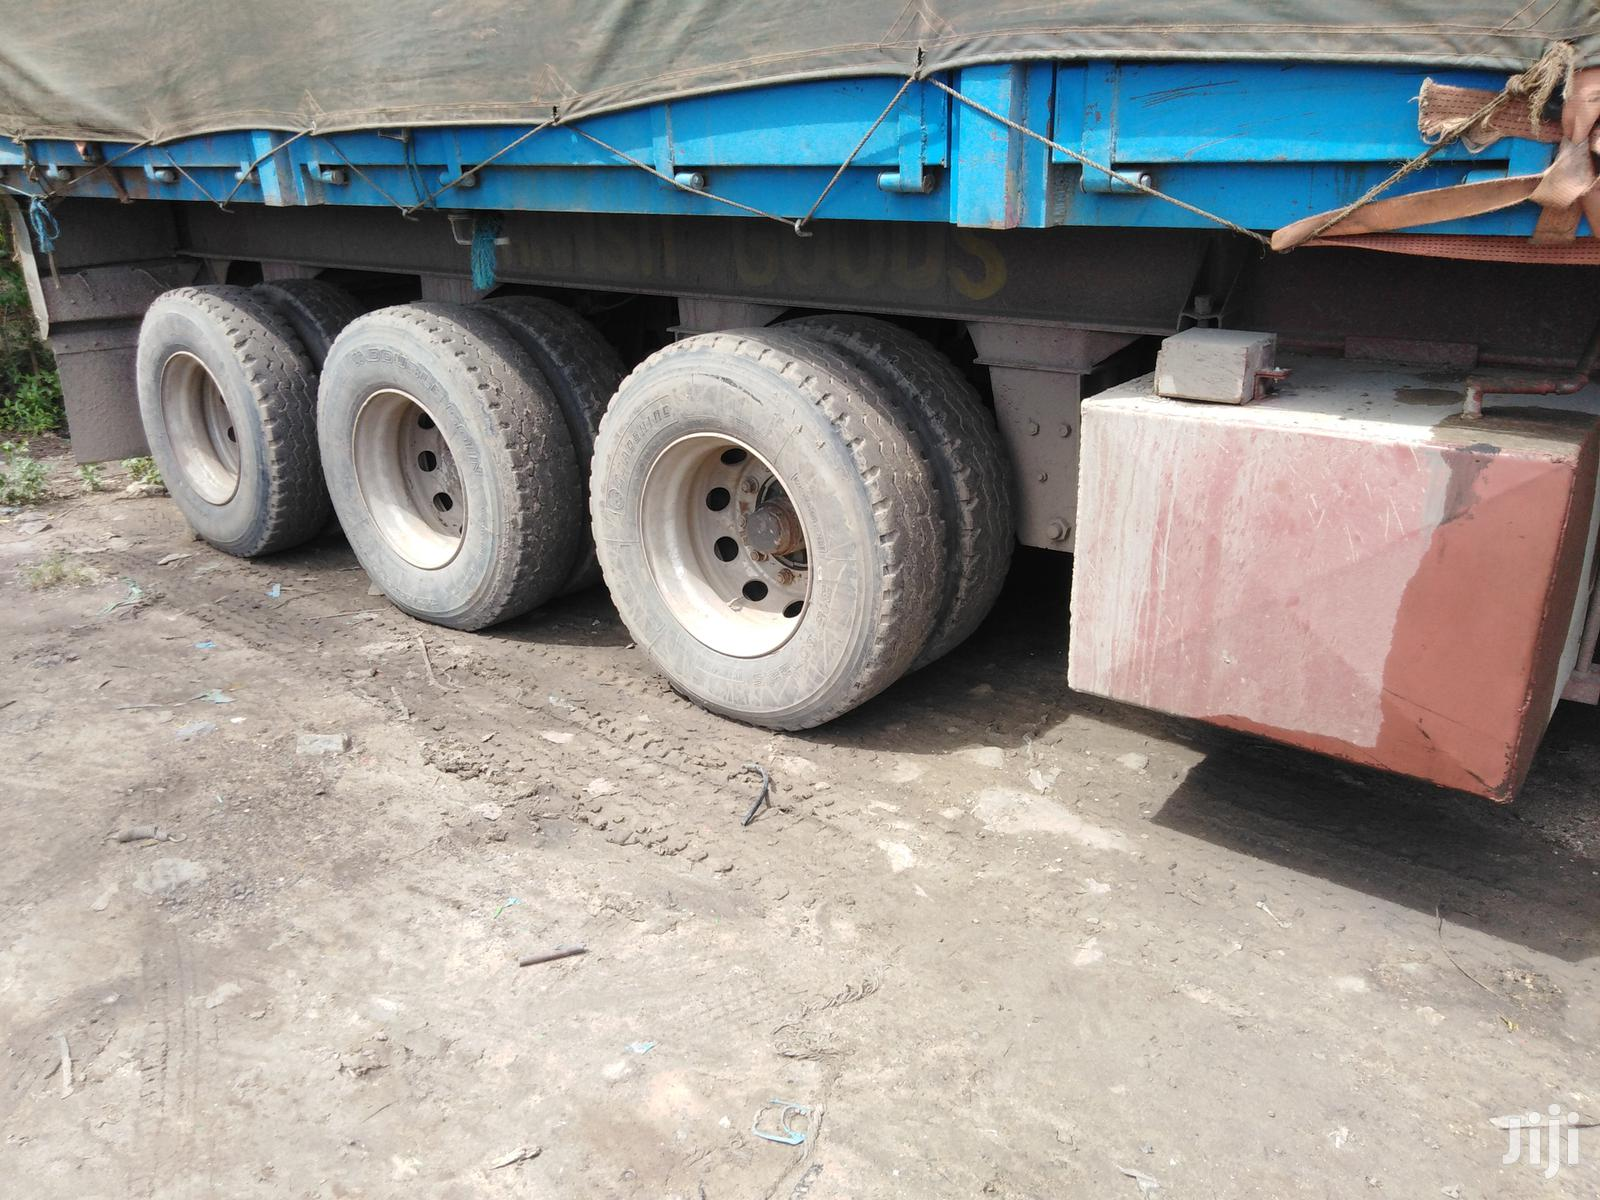 Clean ZE Highsided Trailer in Very Good Running Condition | Trucks & Trailers for sale in Changamwe, Mombasa, Kenya